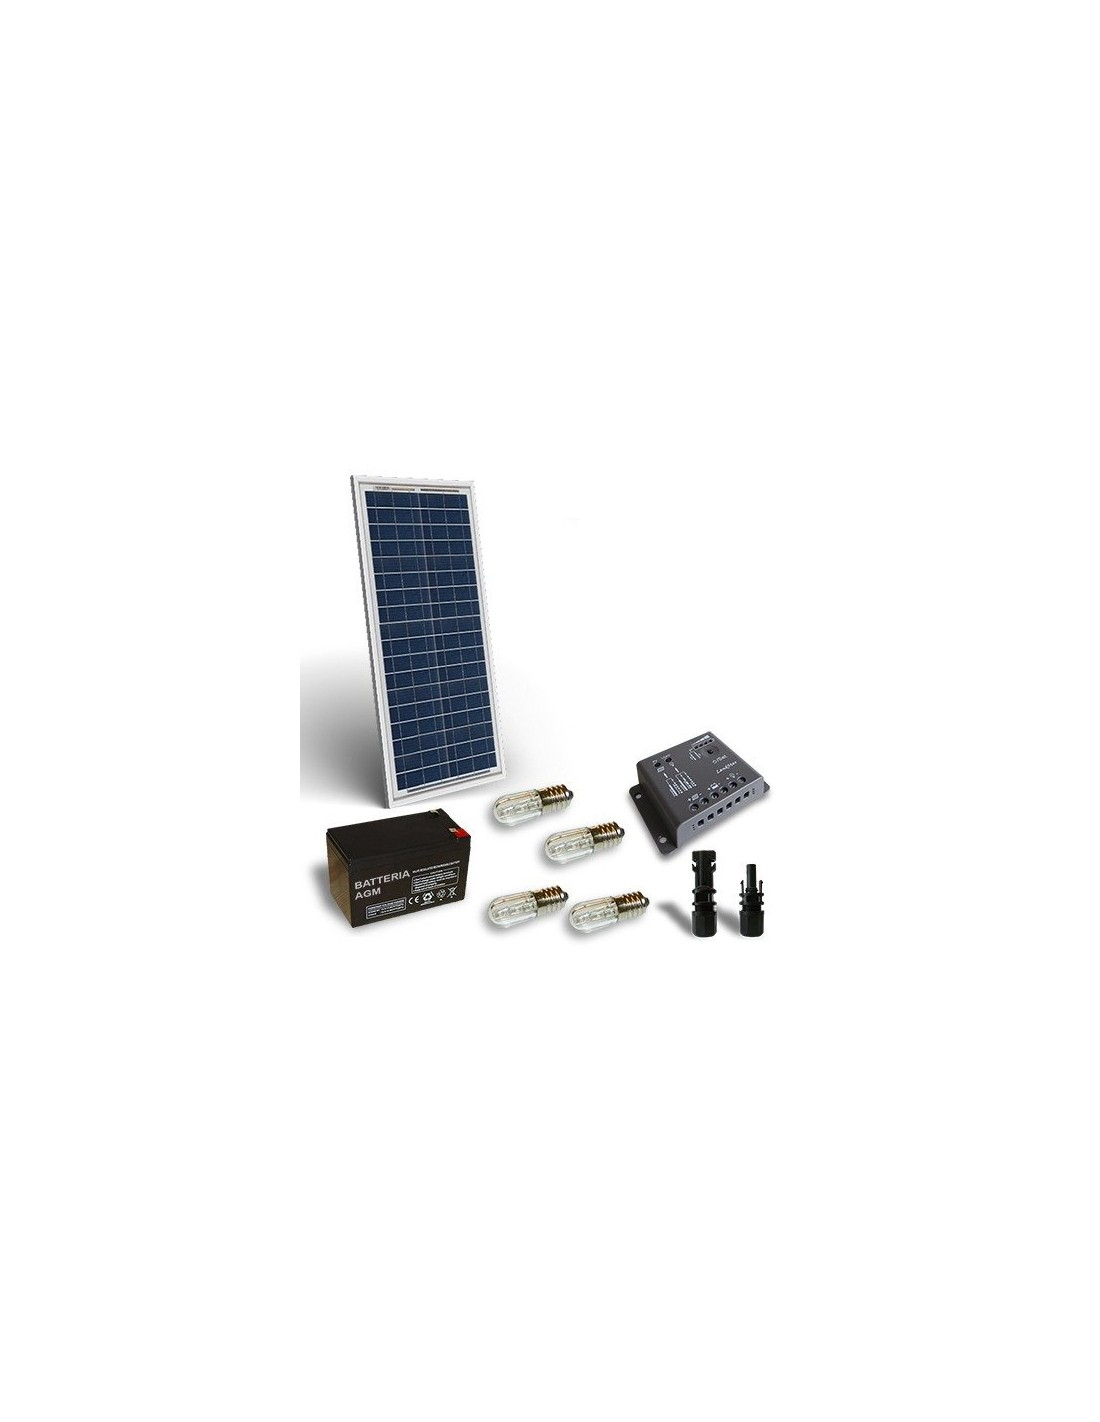 kit solaire votif 30w 12v panneau solaire batterie. Black Bedroom Furniture Sets. Home Design Ideas